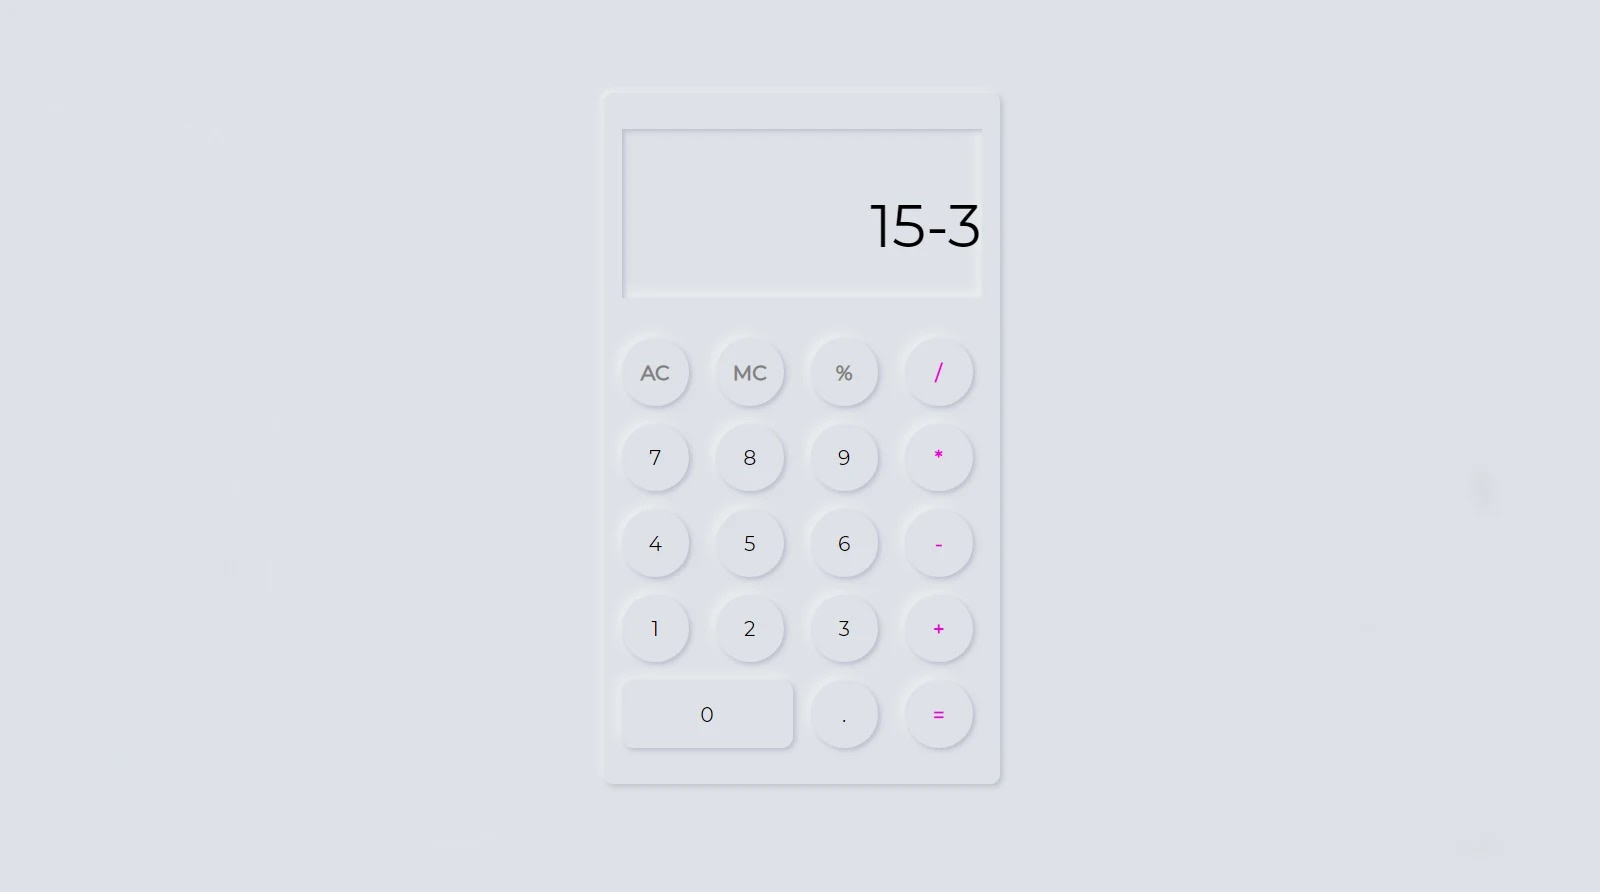 Activate the buttons on the calculator